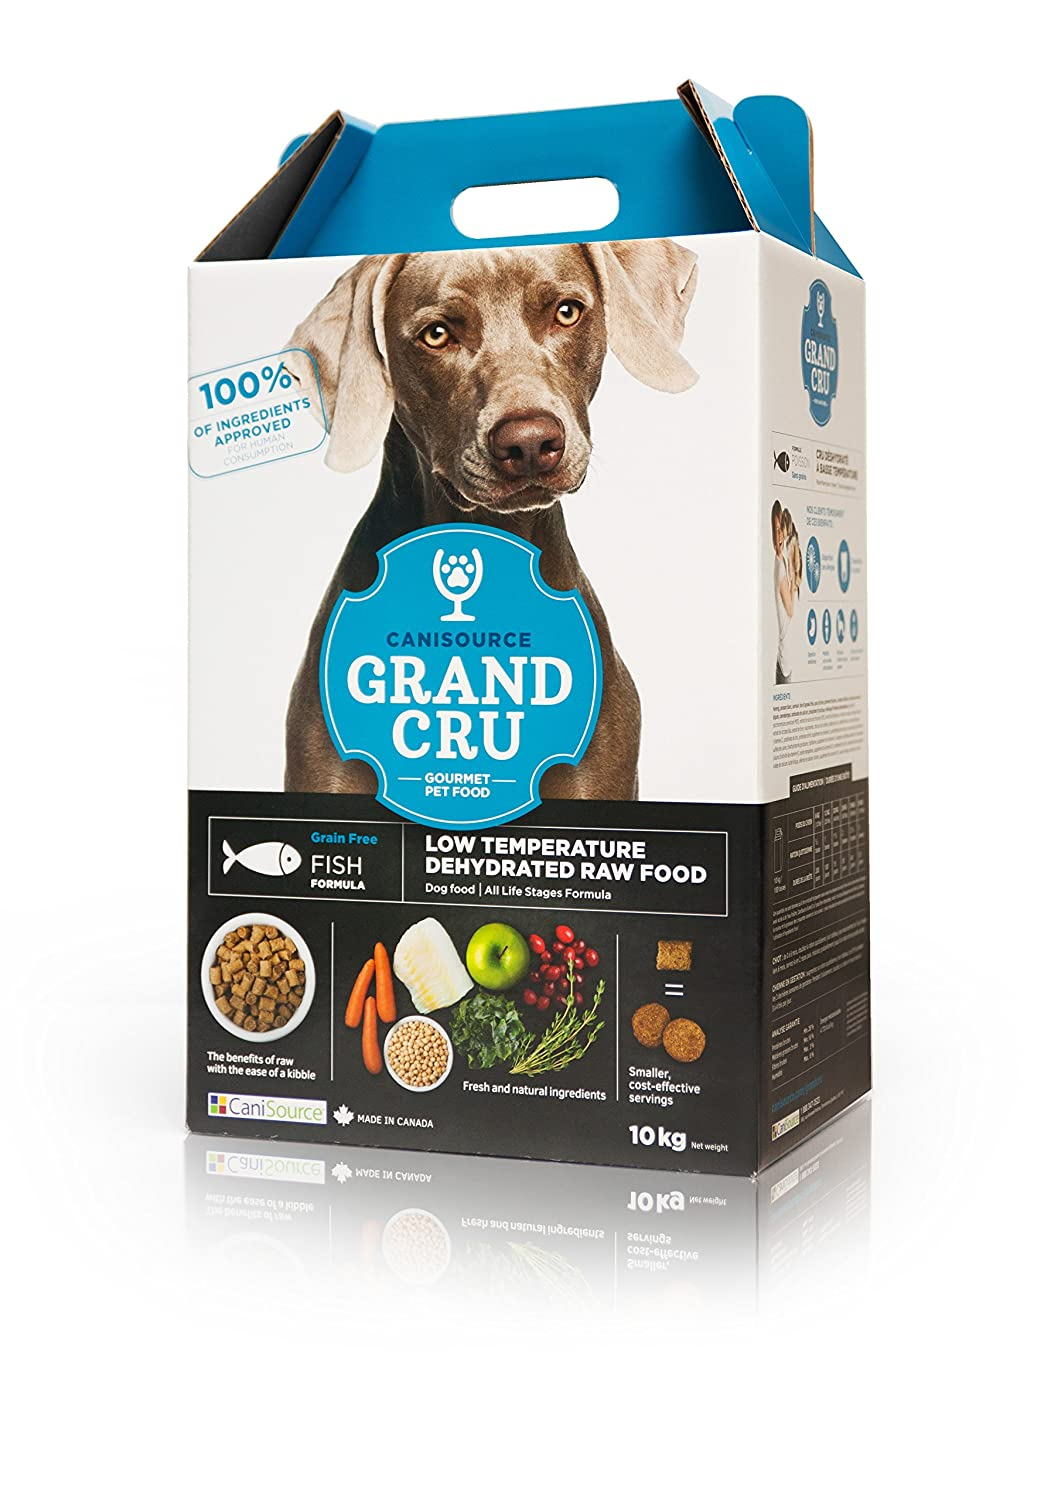 10 kg CaniSource Dog Food Grain Free Fish Formulation, 10Kg (Packaging May Vary)